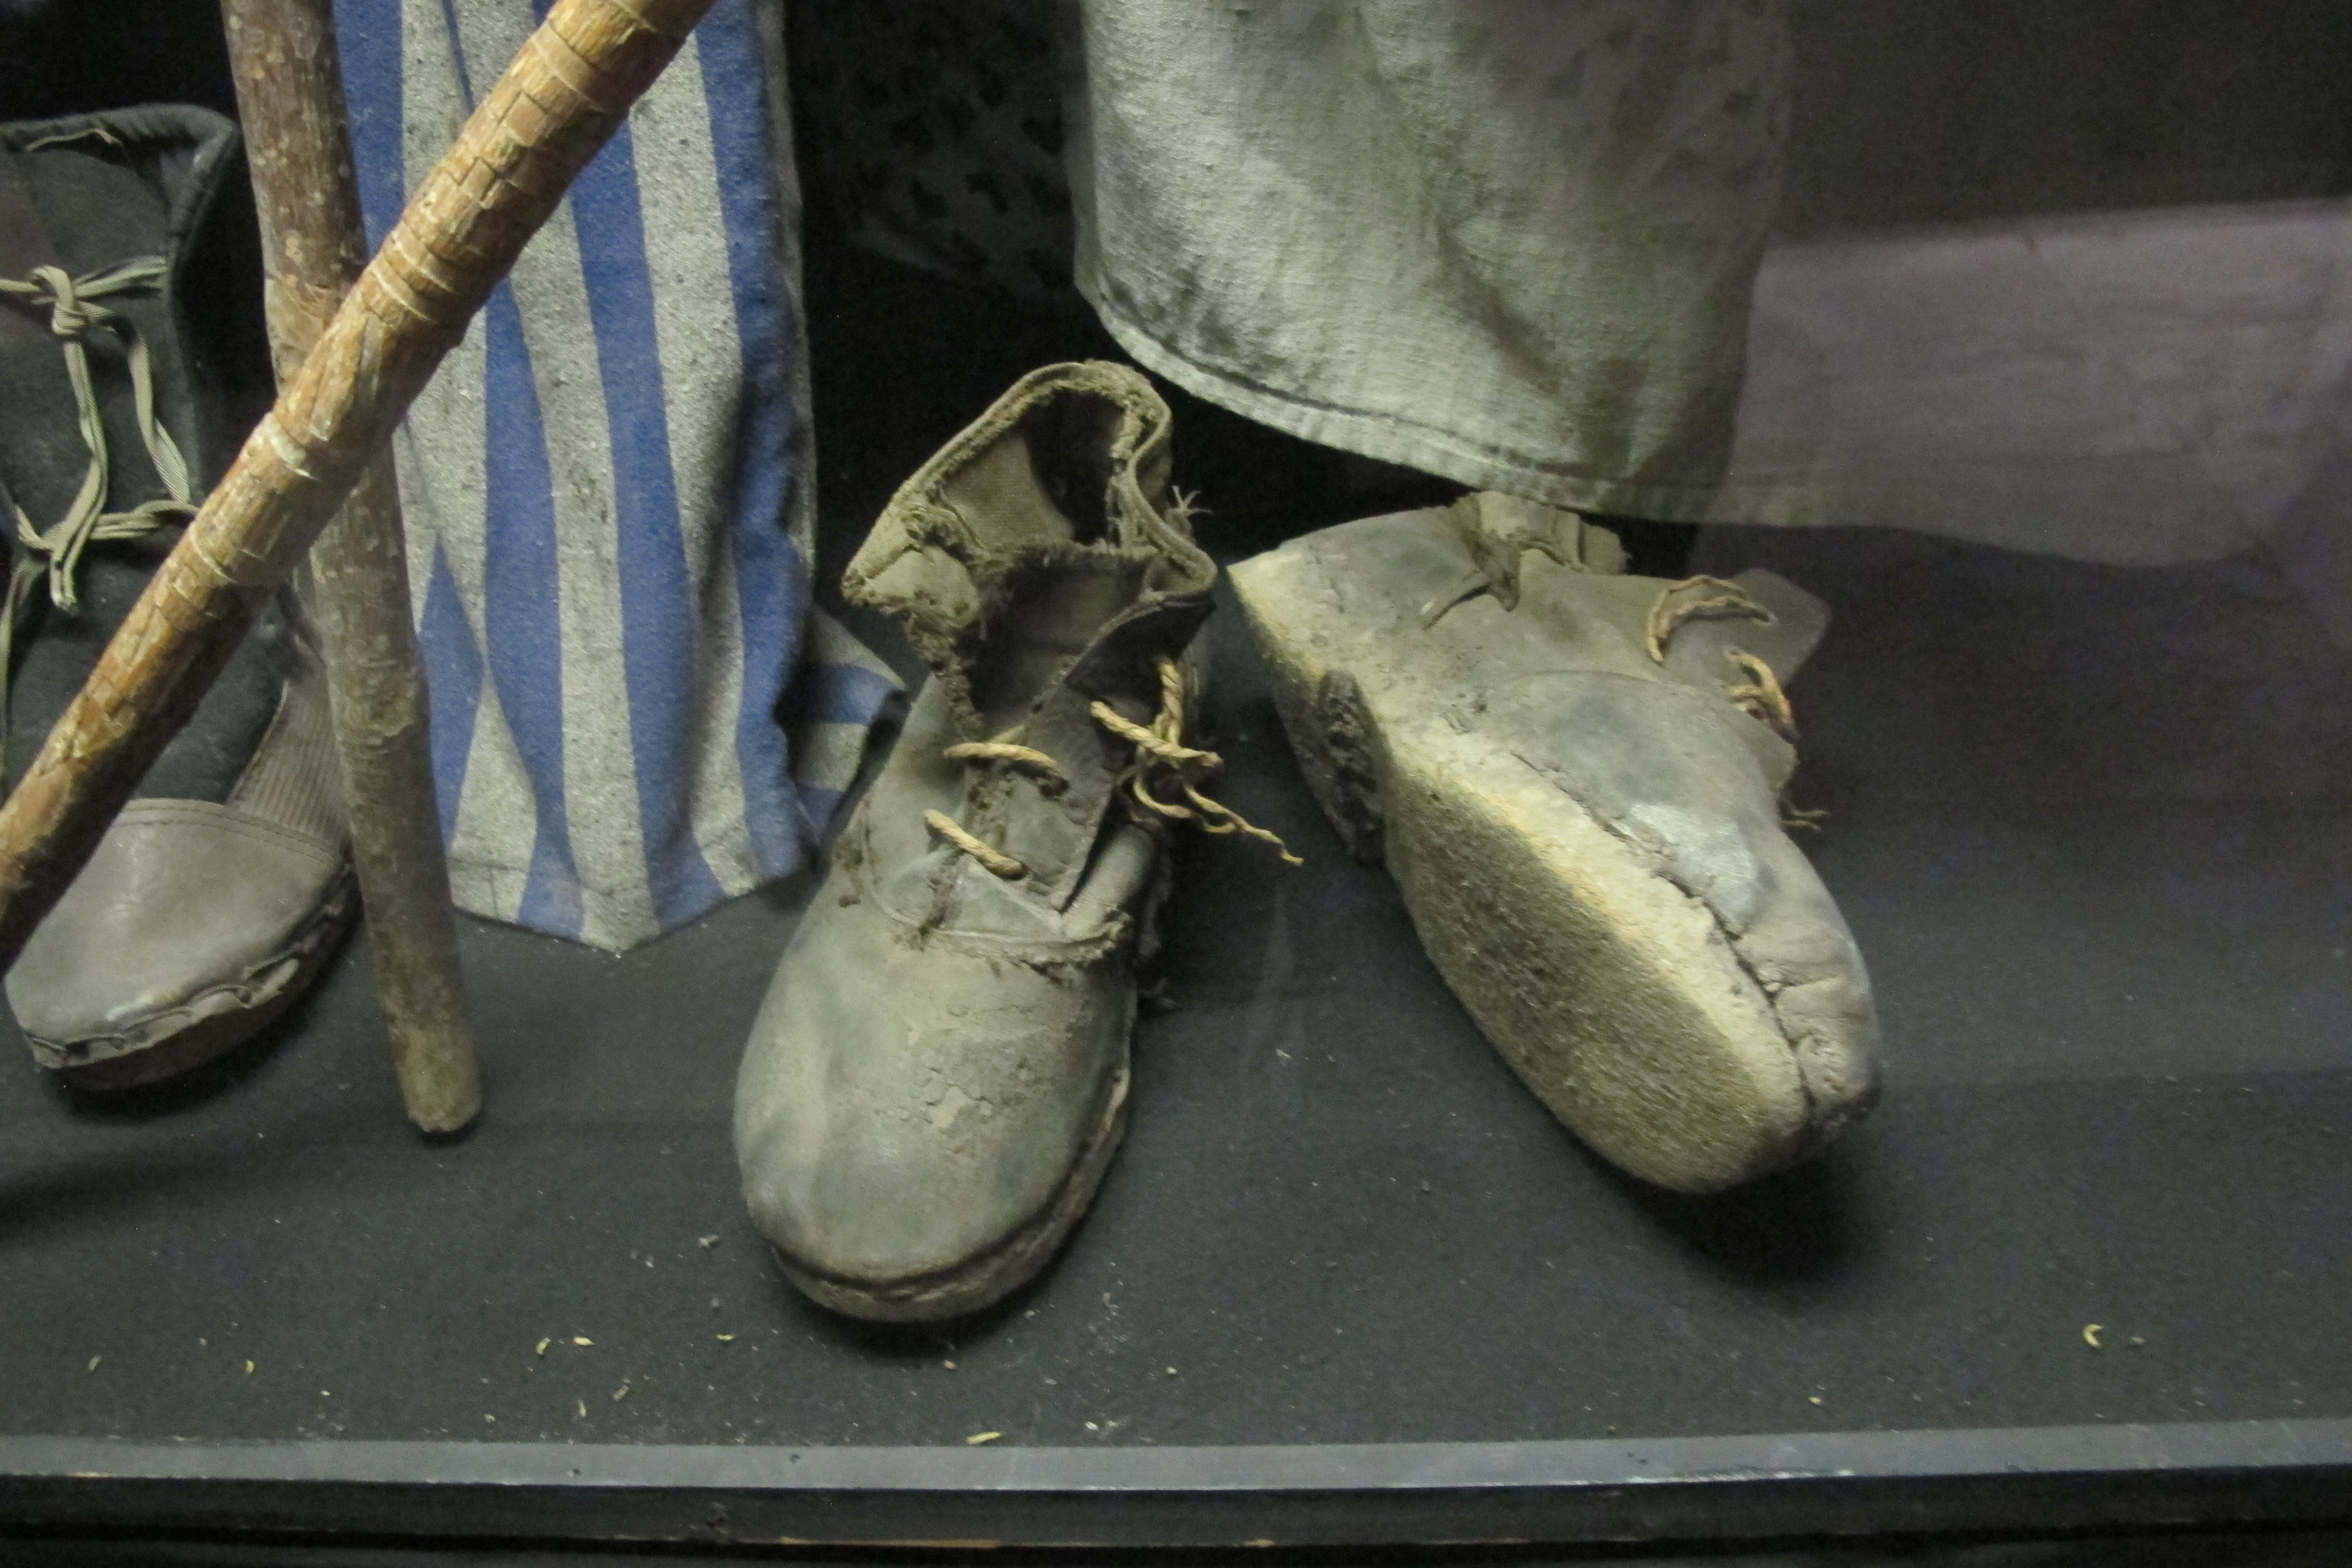 Ernie Hollander: Shoes and clothing worn by prisoners at Nazi concentration camps during World War II. Photo by Barbara Newhall